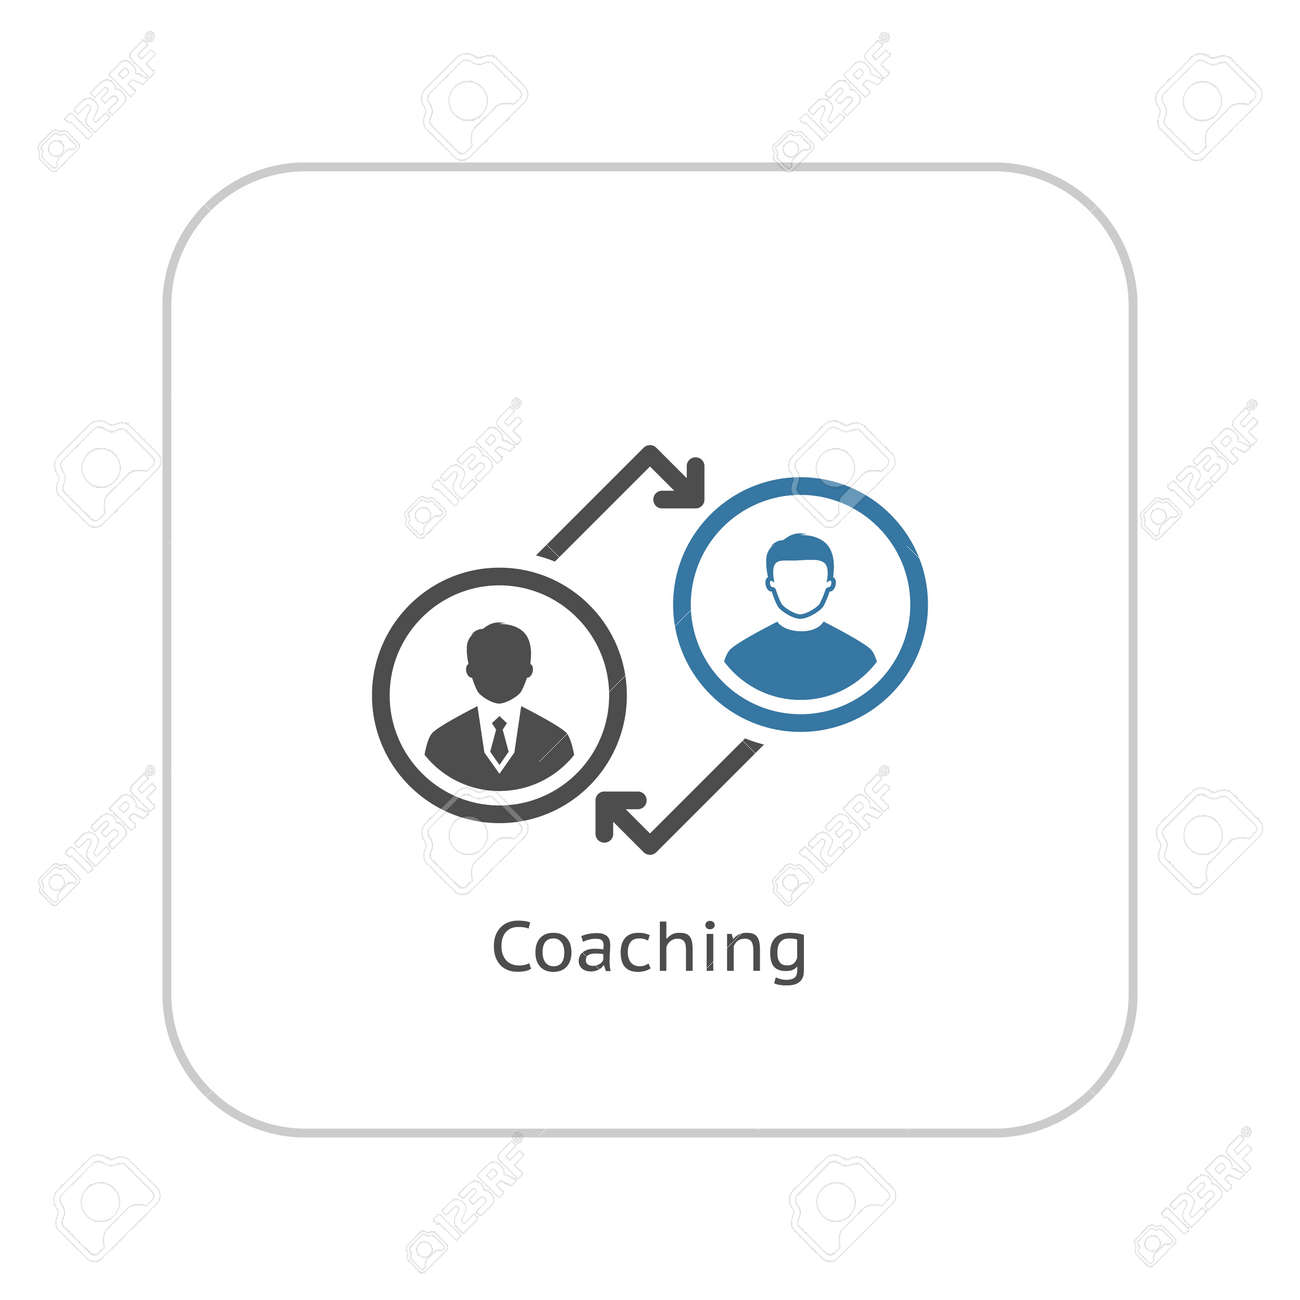 Coaching Icon. Business Concept. Flat Design. Isolated Illustration. - 46095032